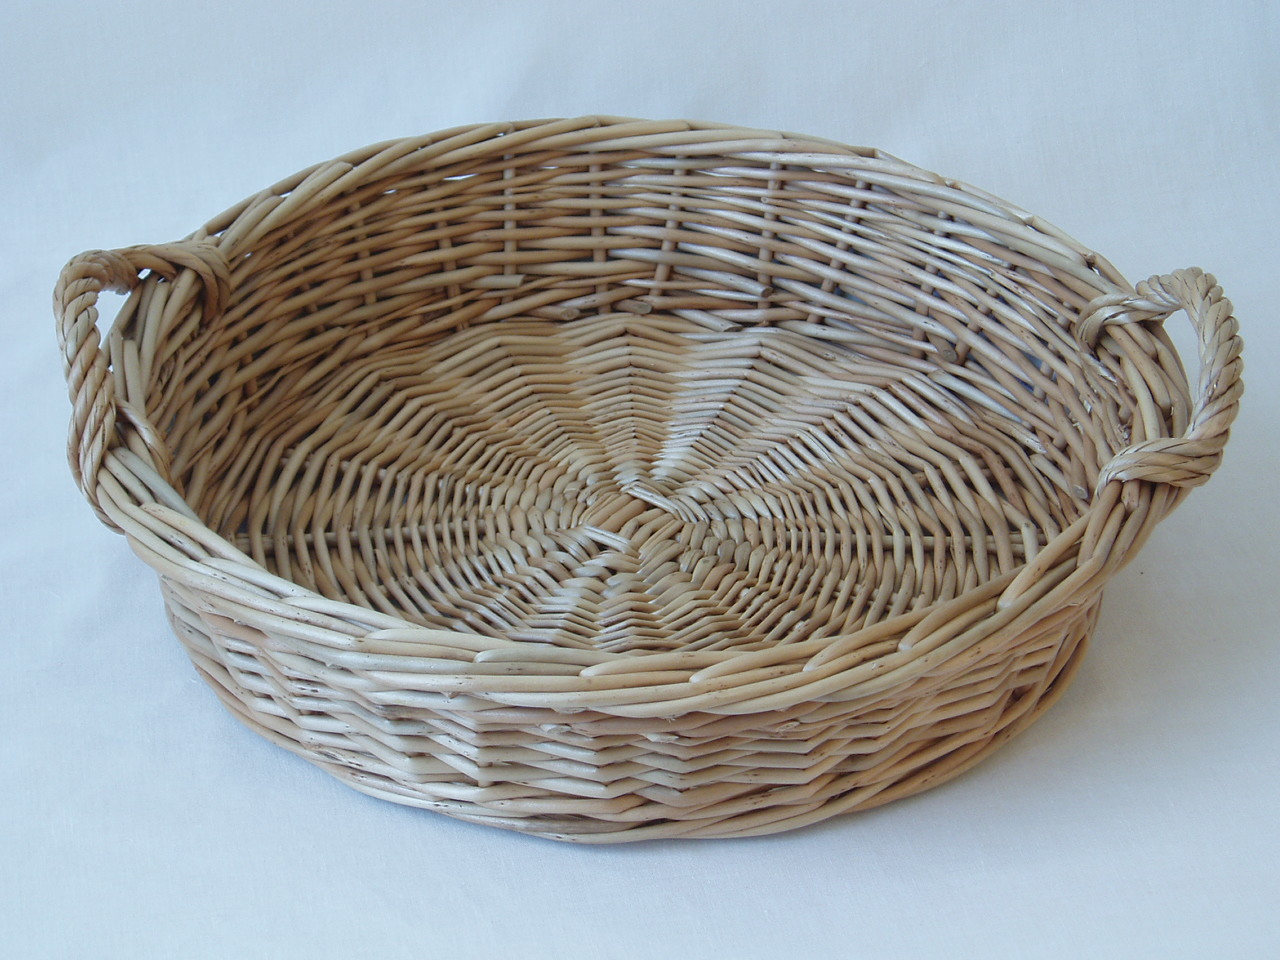 Fruit Baskets And Trays Wicker Beachcomber Round